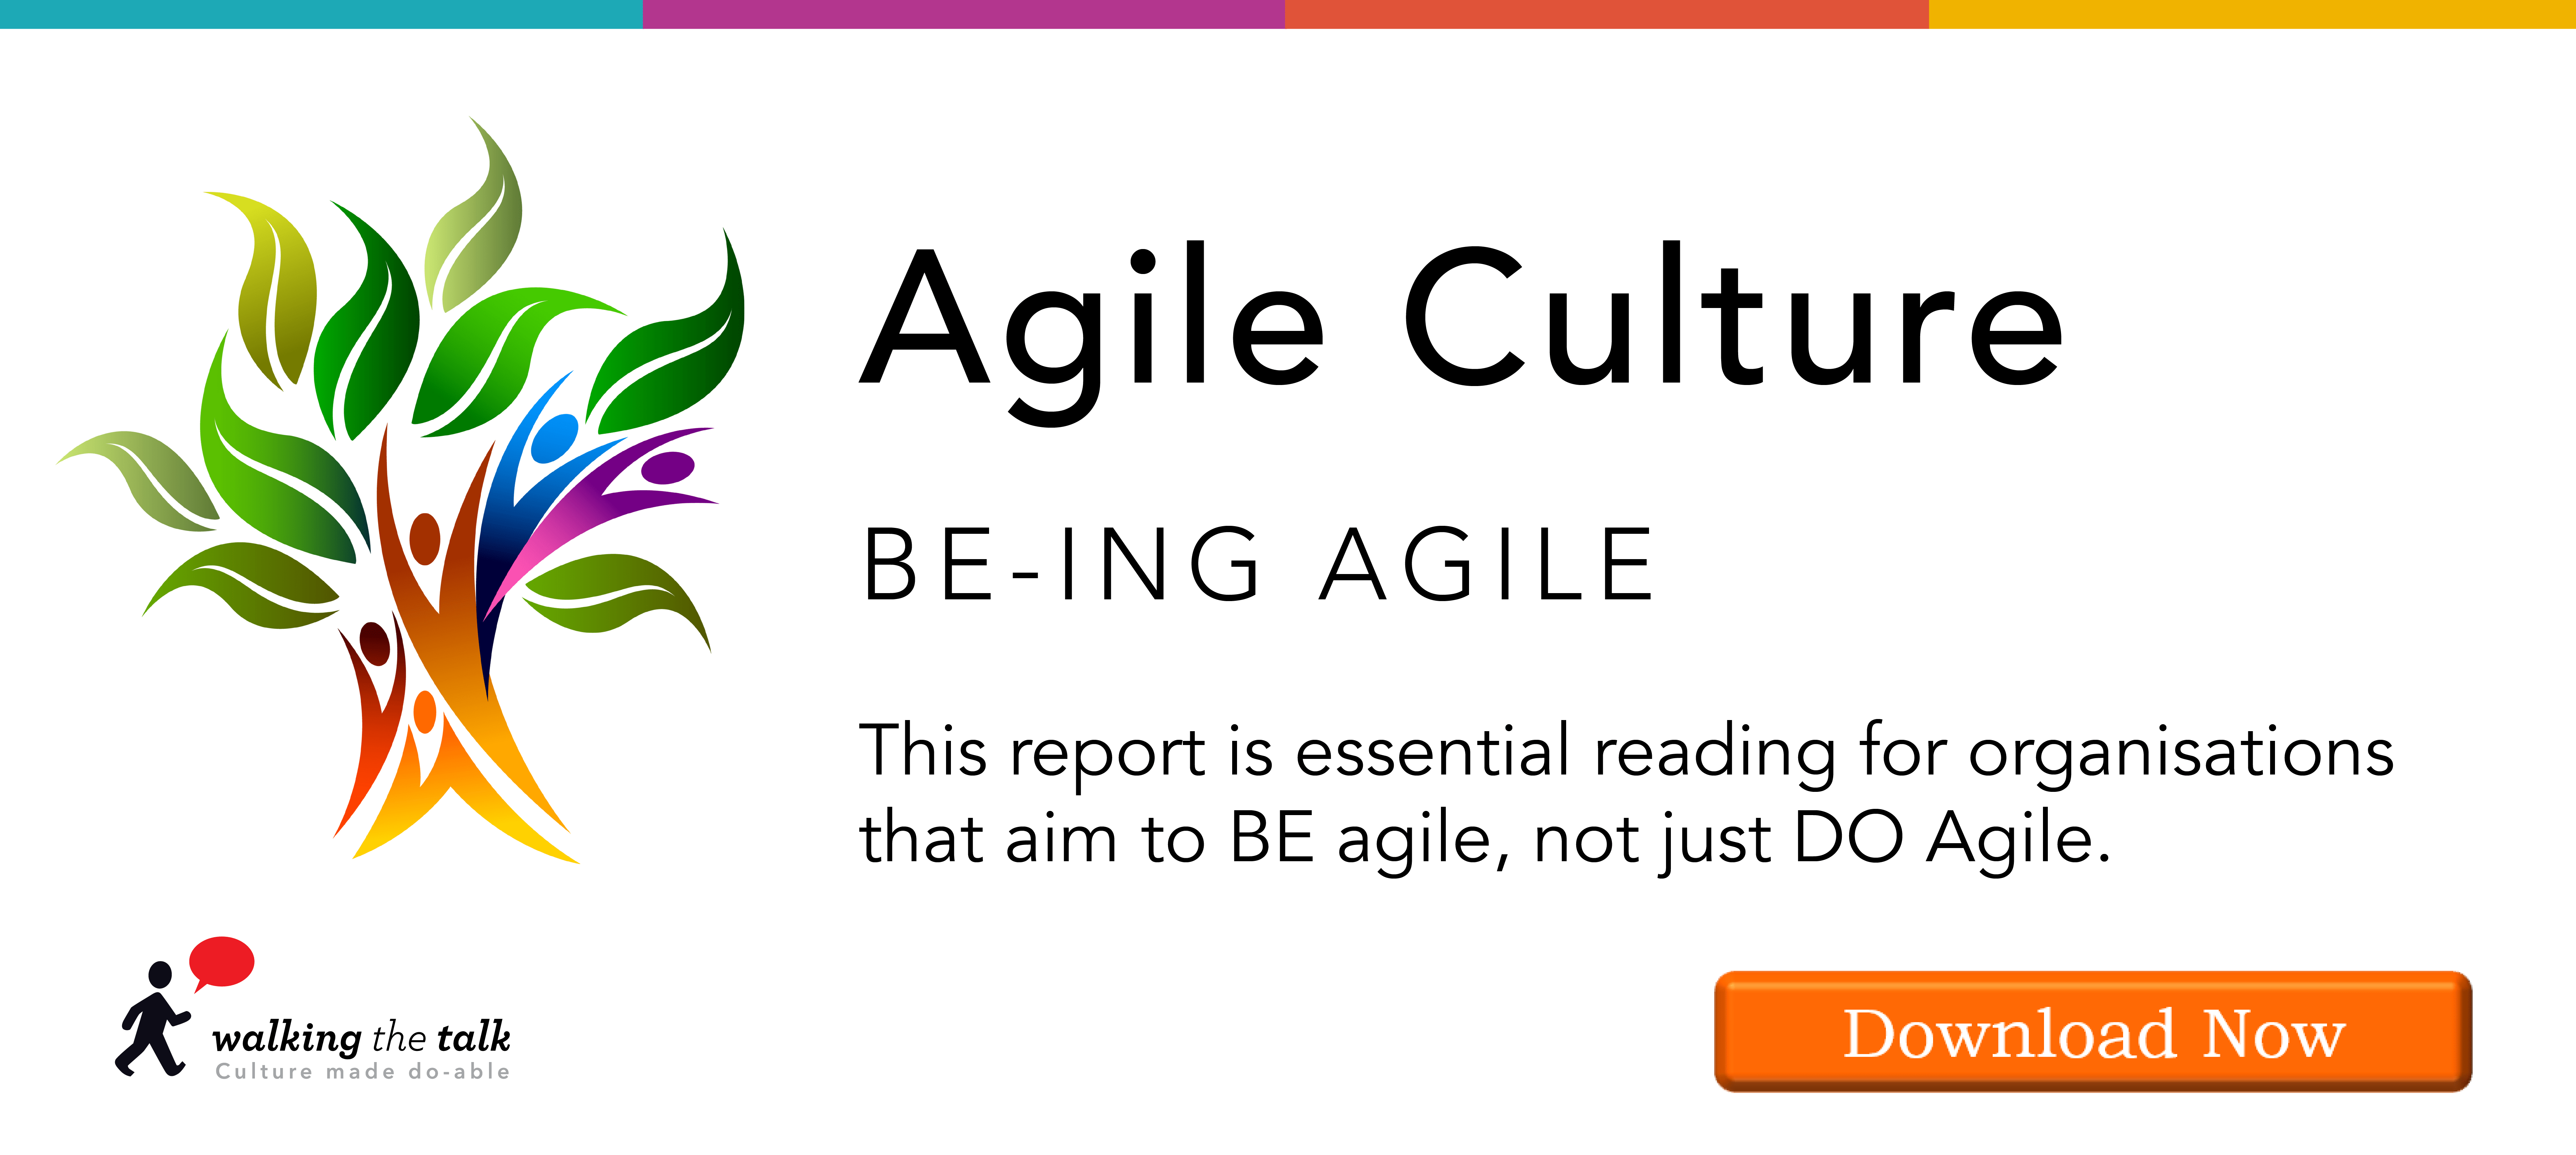 Download report on Agile Culture in 2019